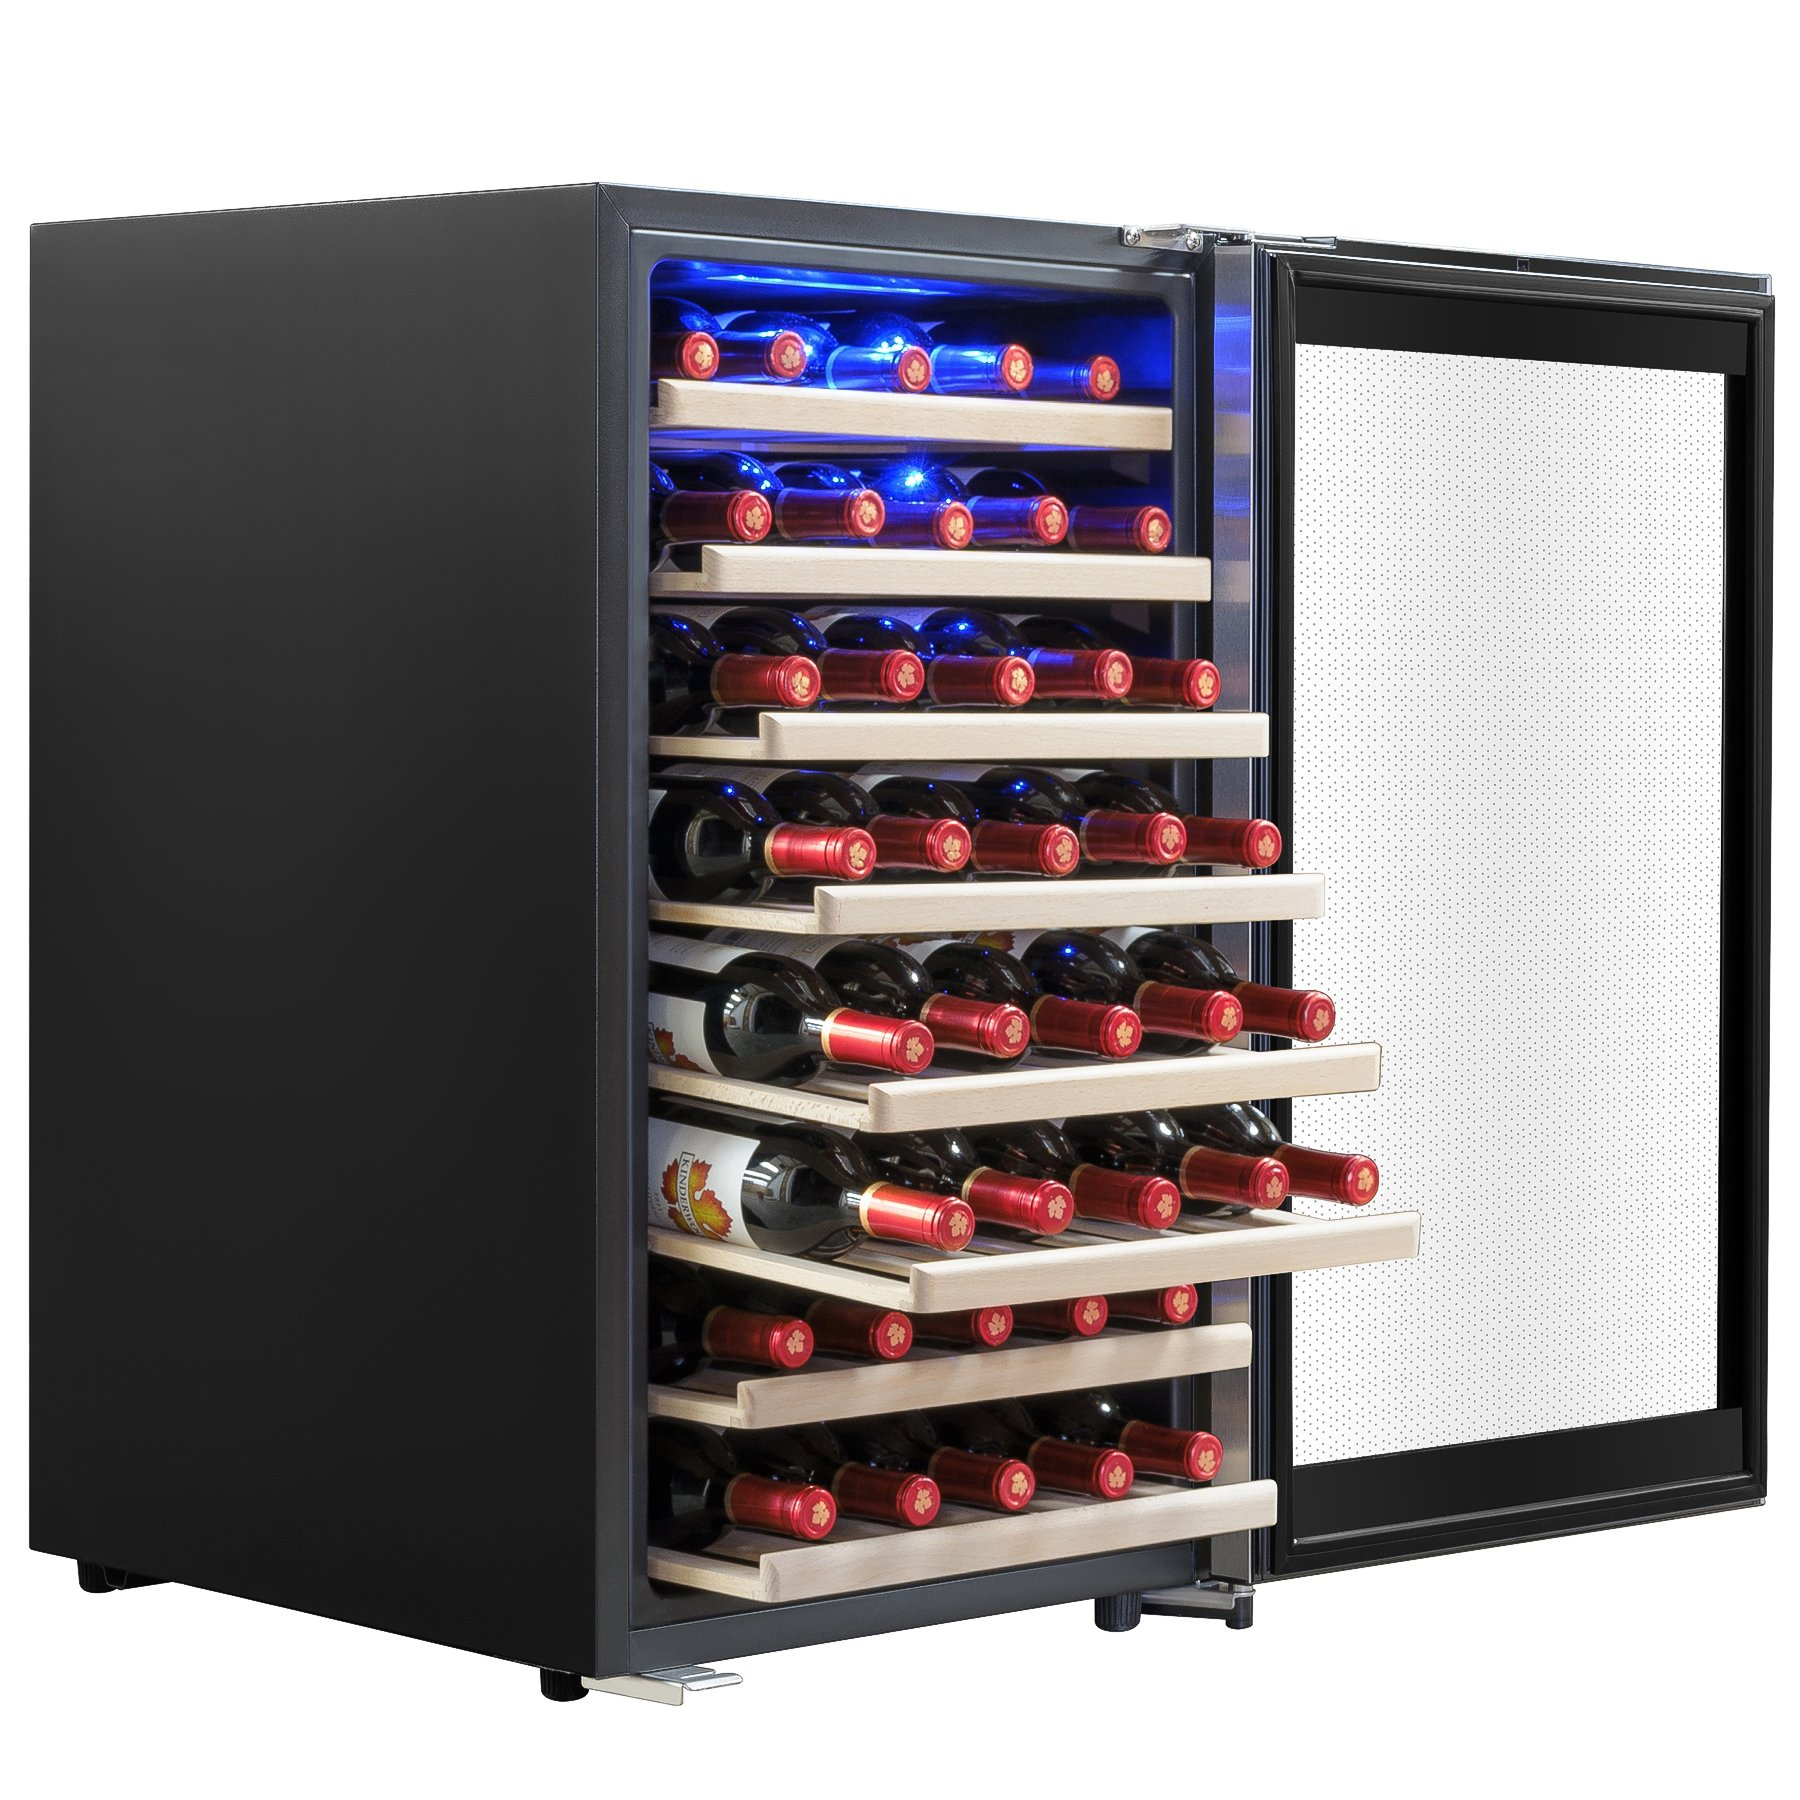 AKDY 52 Bottles Built-in Compressor Single Zone Adjustable Touch Control Panel Freestanding Wine Cooler Refrigerator